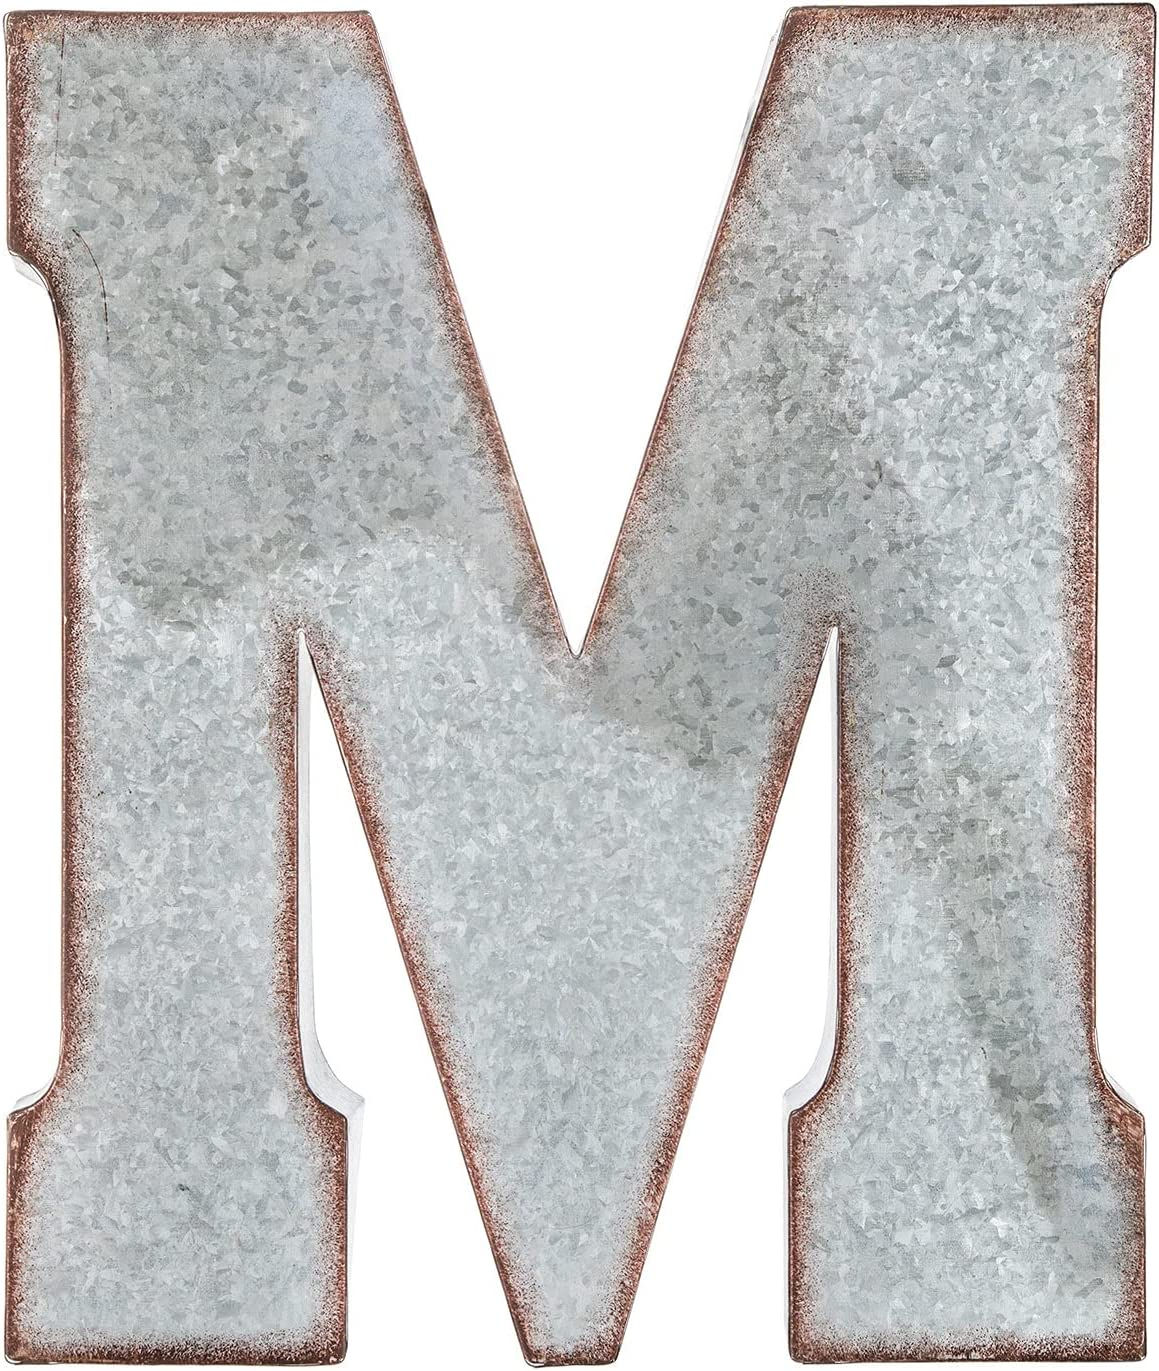 Hobby Lobby Home Décor X-Large Galvanized Rustic Industrial Metal Letter Wall Hanging Table Decor - M